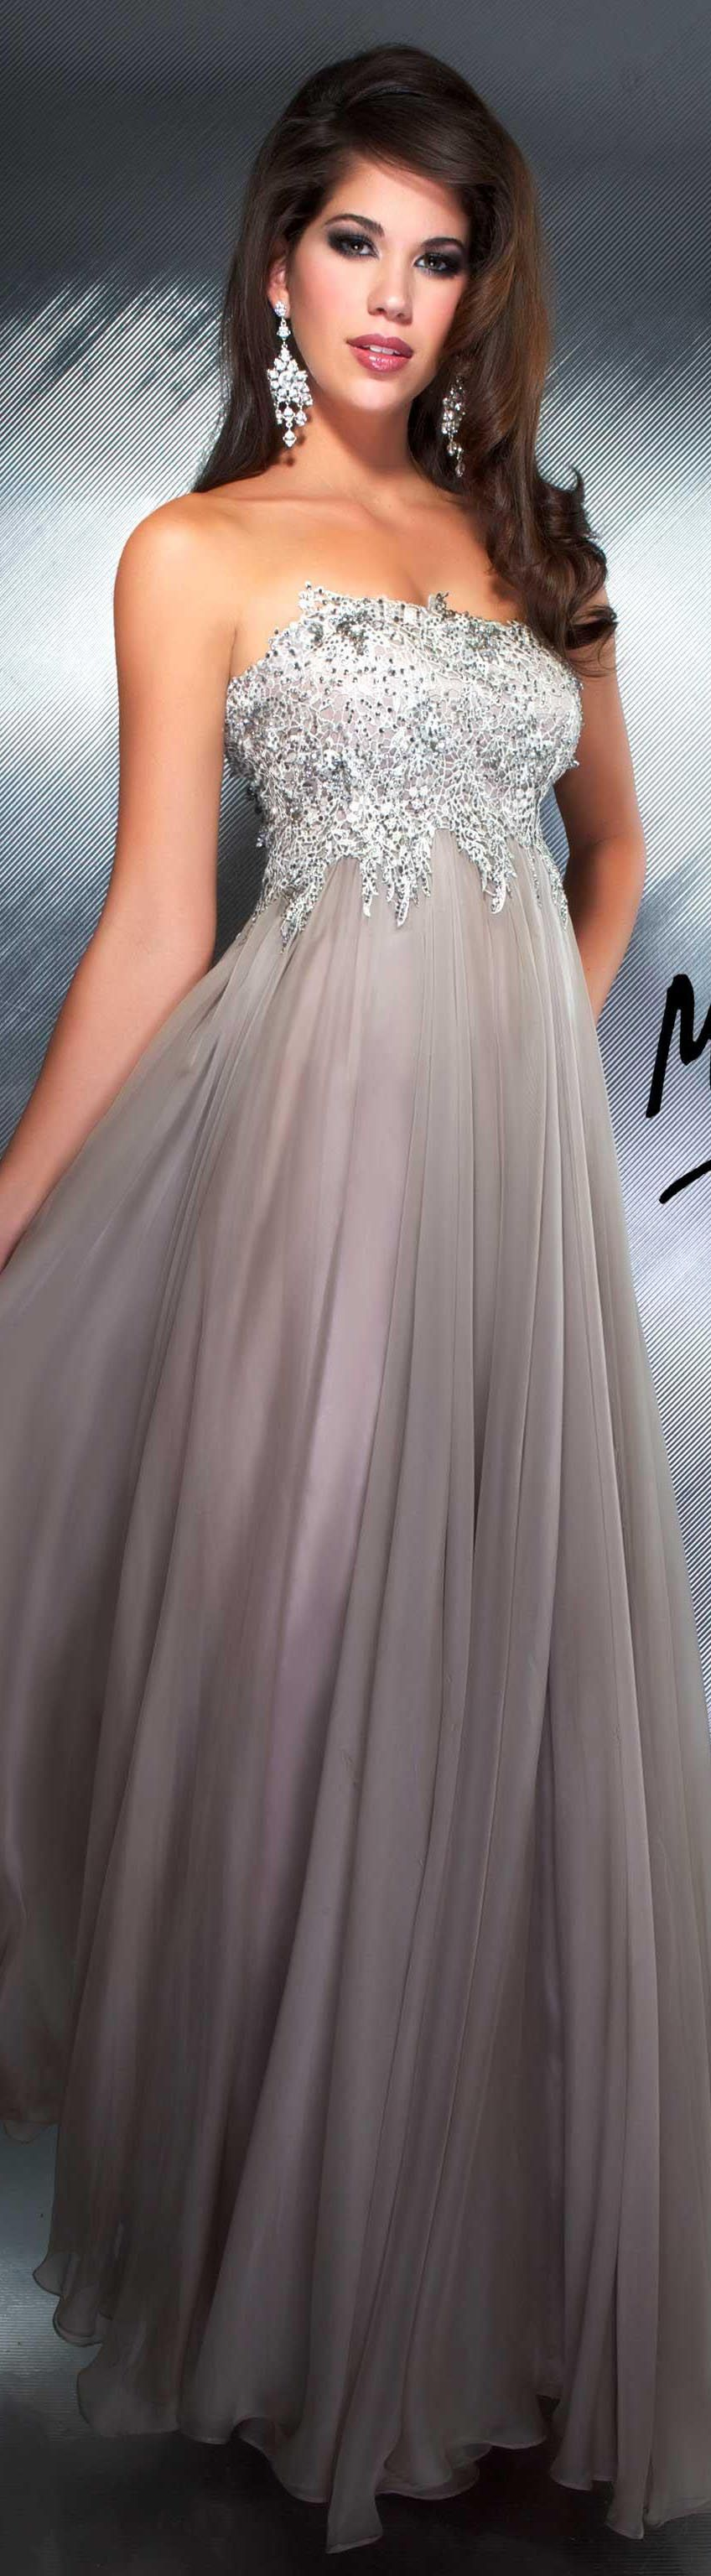 Mac duggal couture dress platinum couture dresses style d long